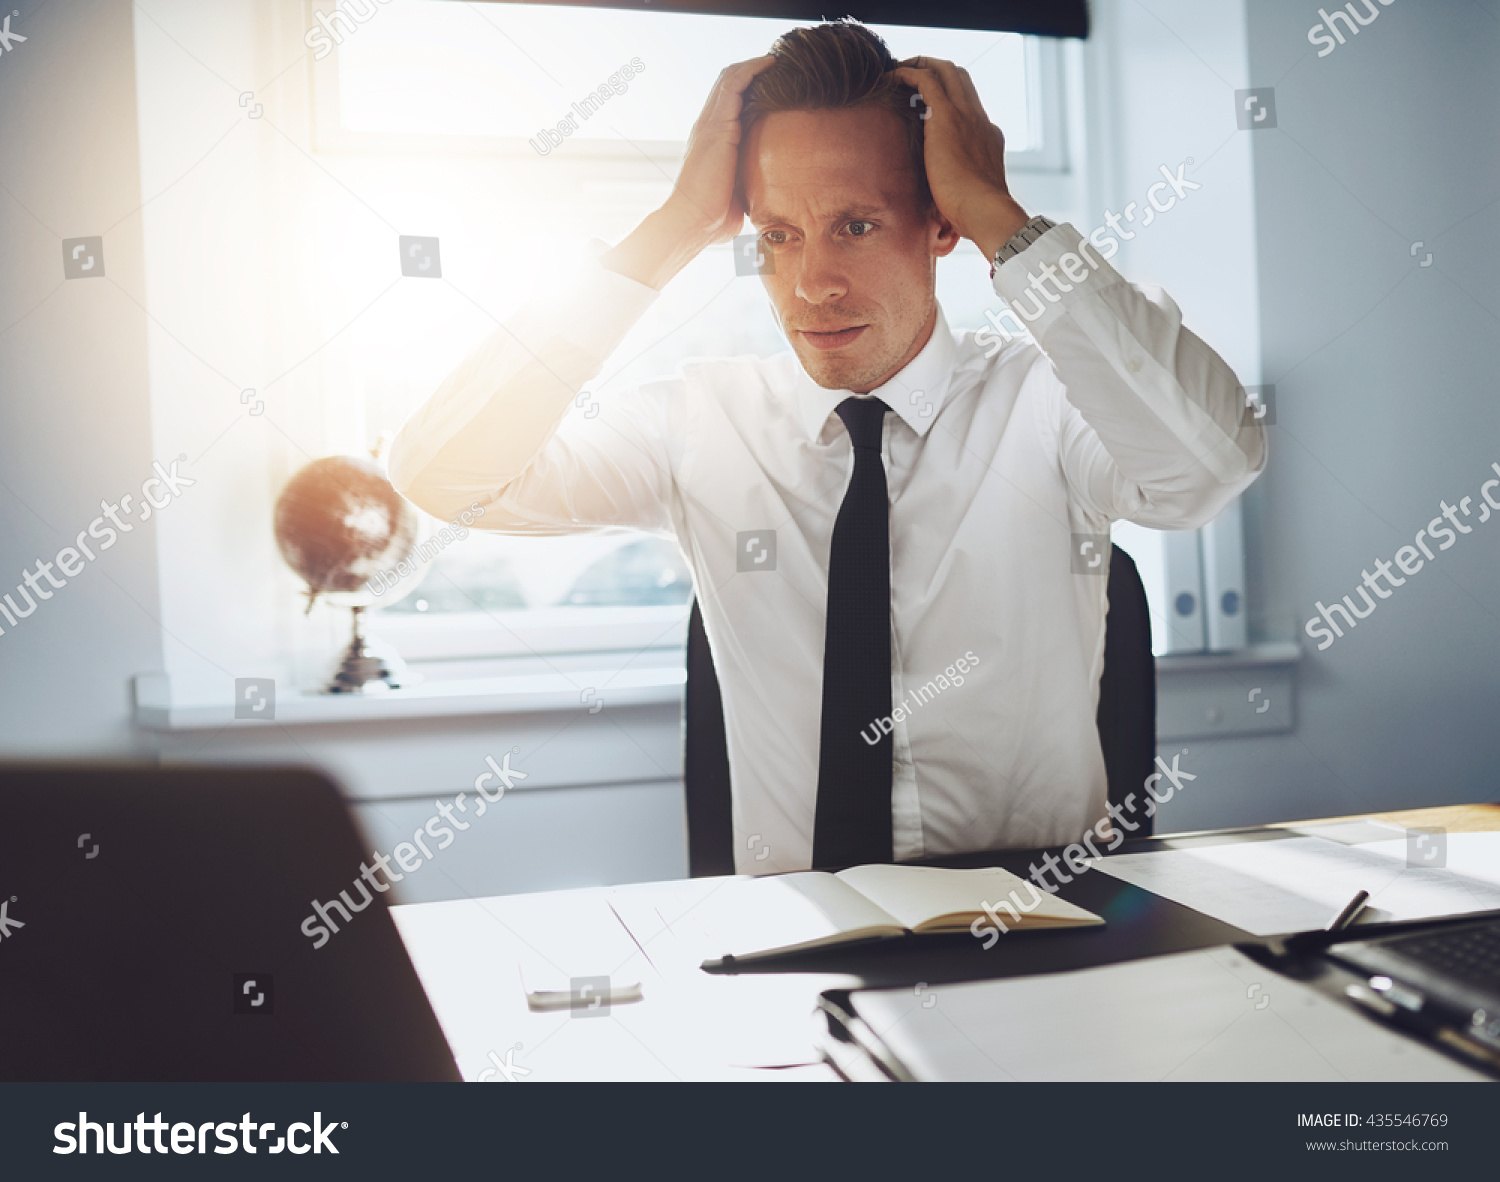 Frustrated office worker on the phone holding stock photo image - Frustrated Business Man Looking At Laptop Holding His Hands To His Head In Frustration